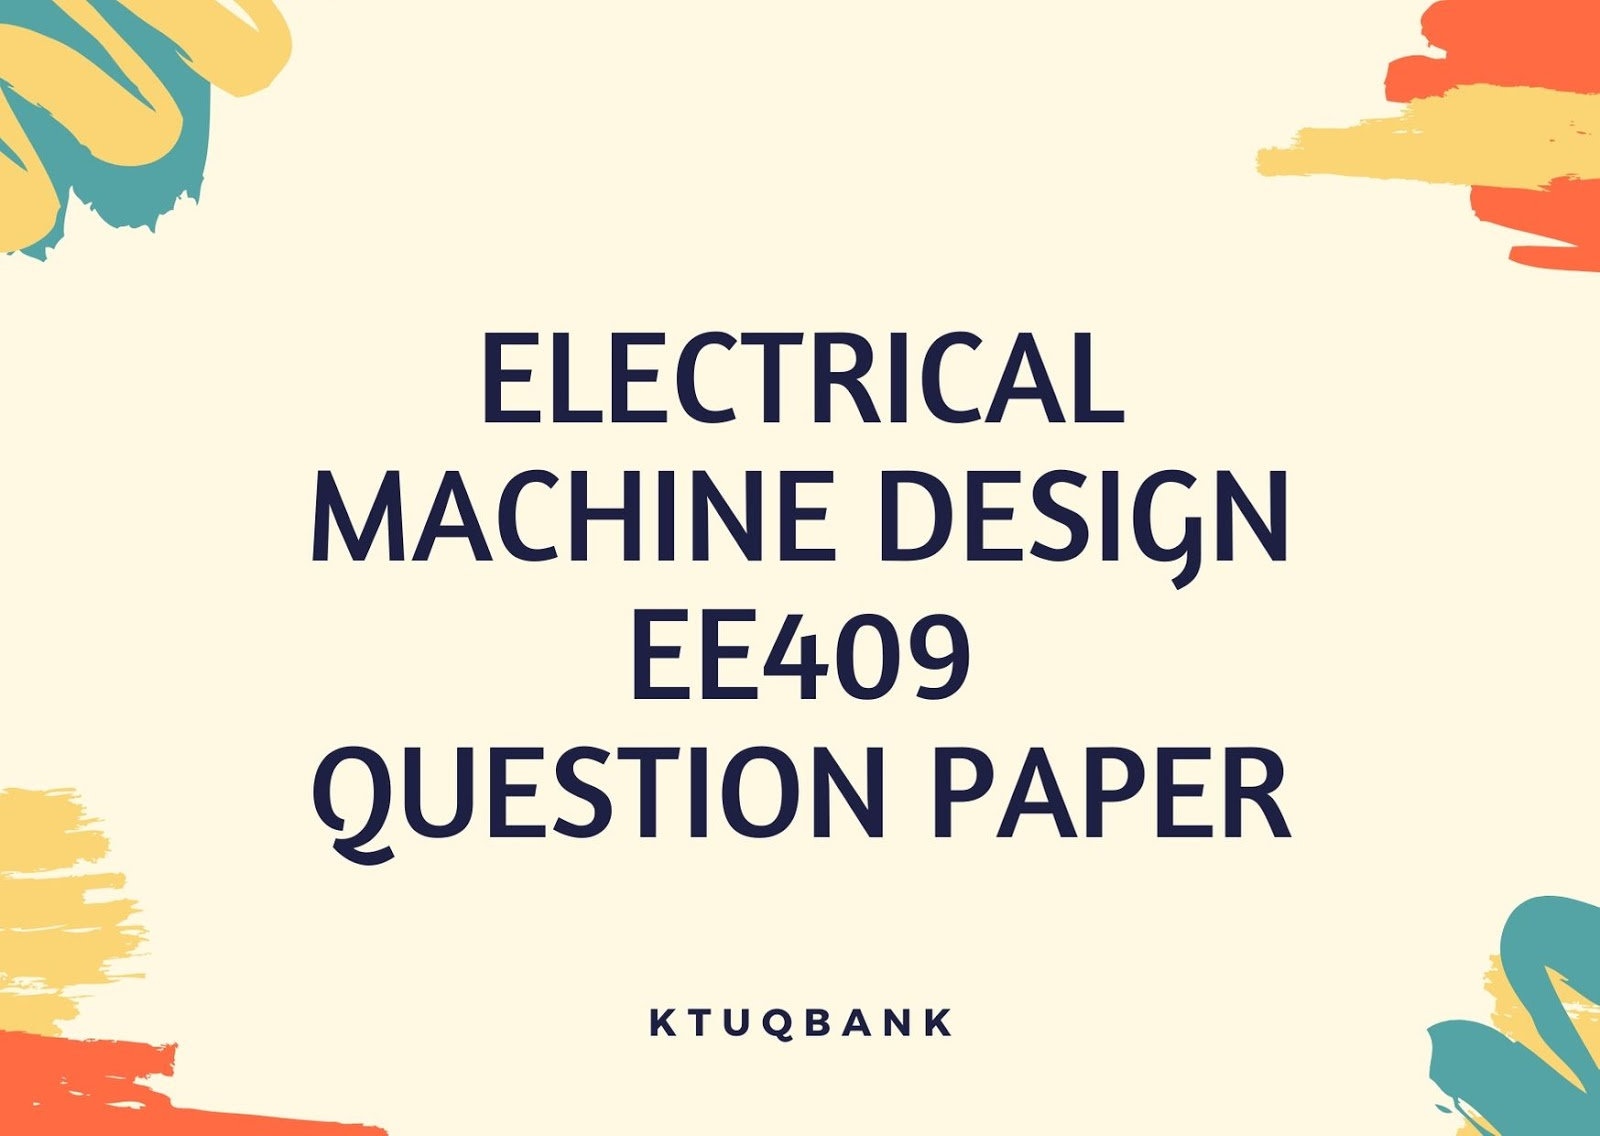 Electrical Machine Design | EE409 | Question Papers (2015 batch)